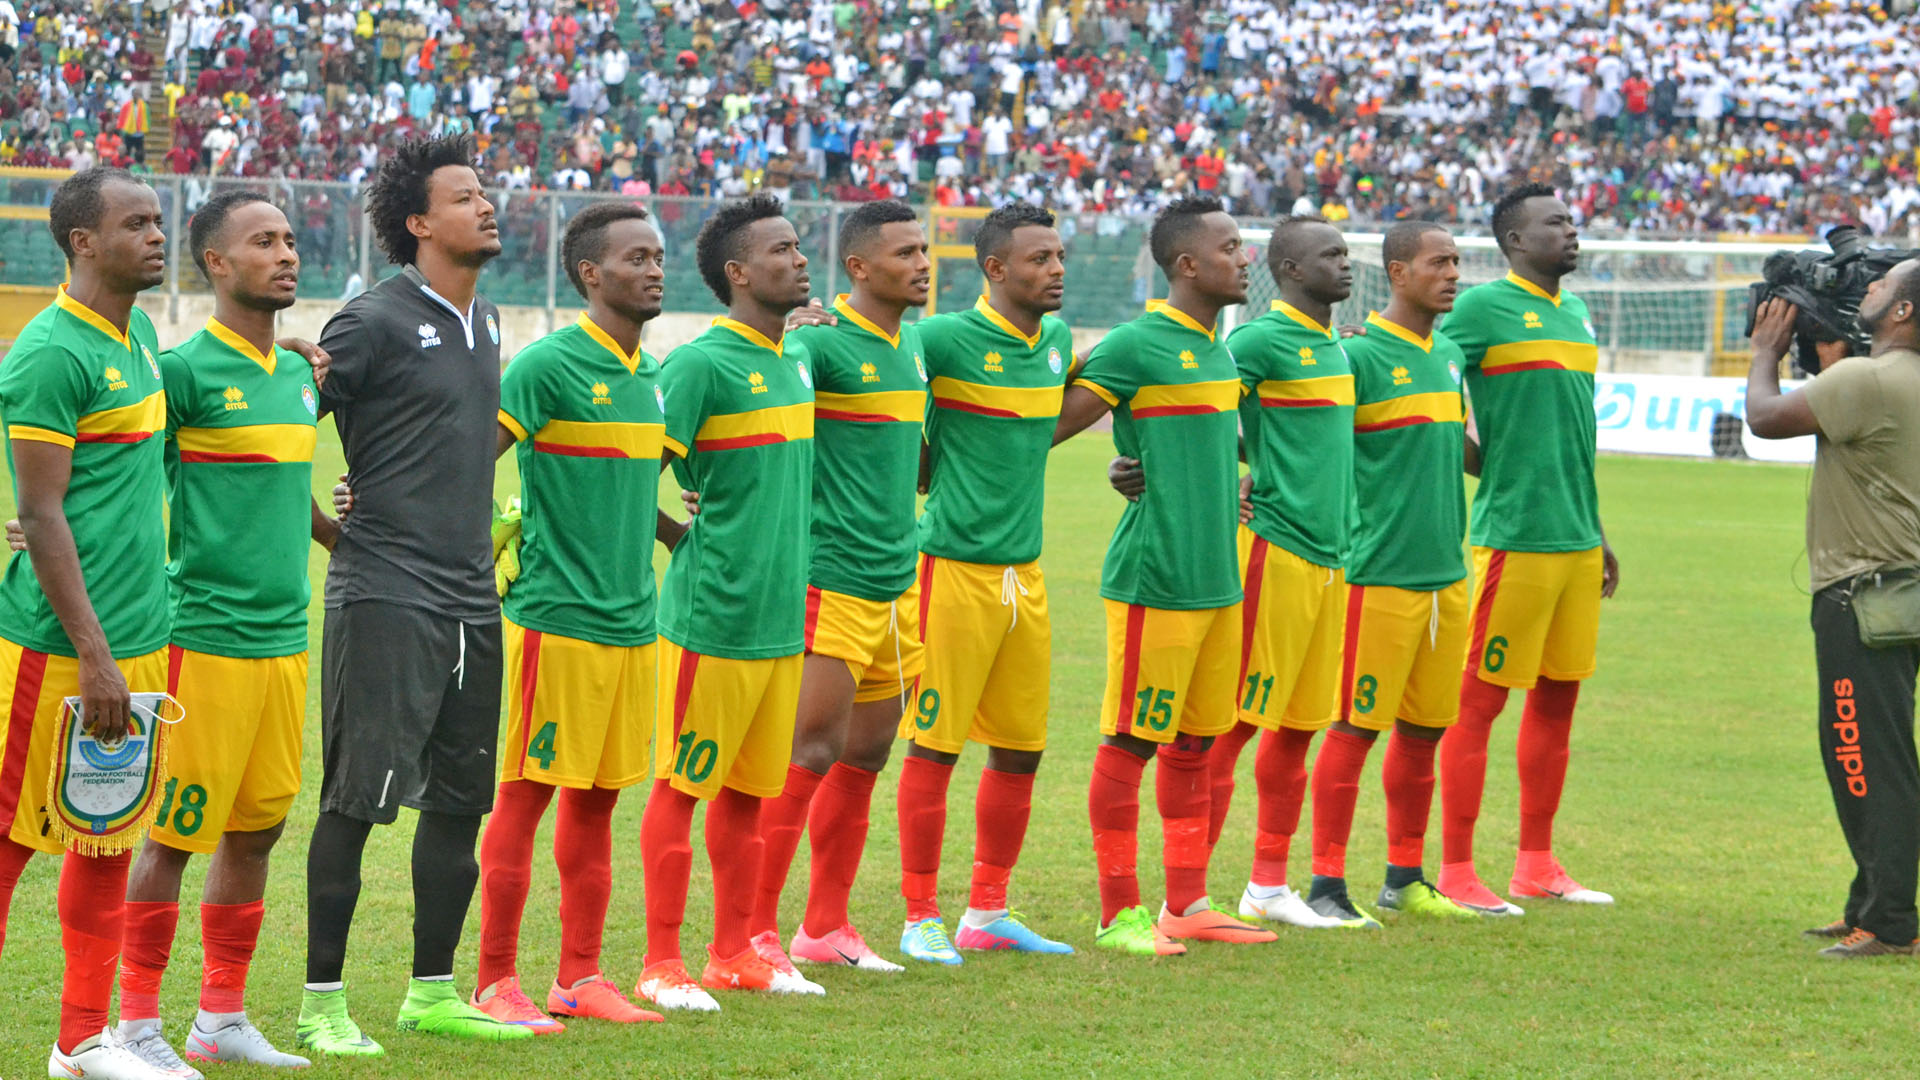 Ethiopia within sight of AFCON after beating Madagascar